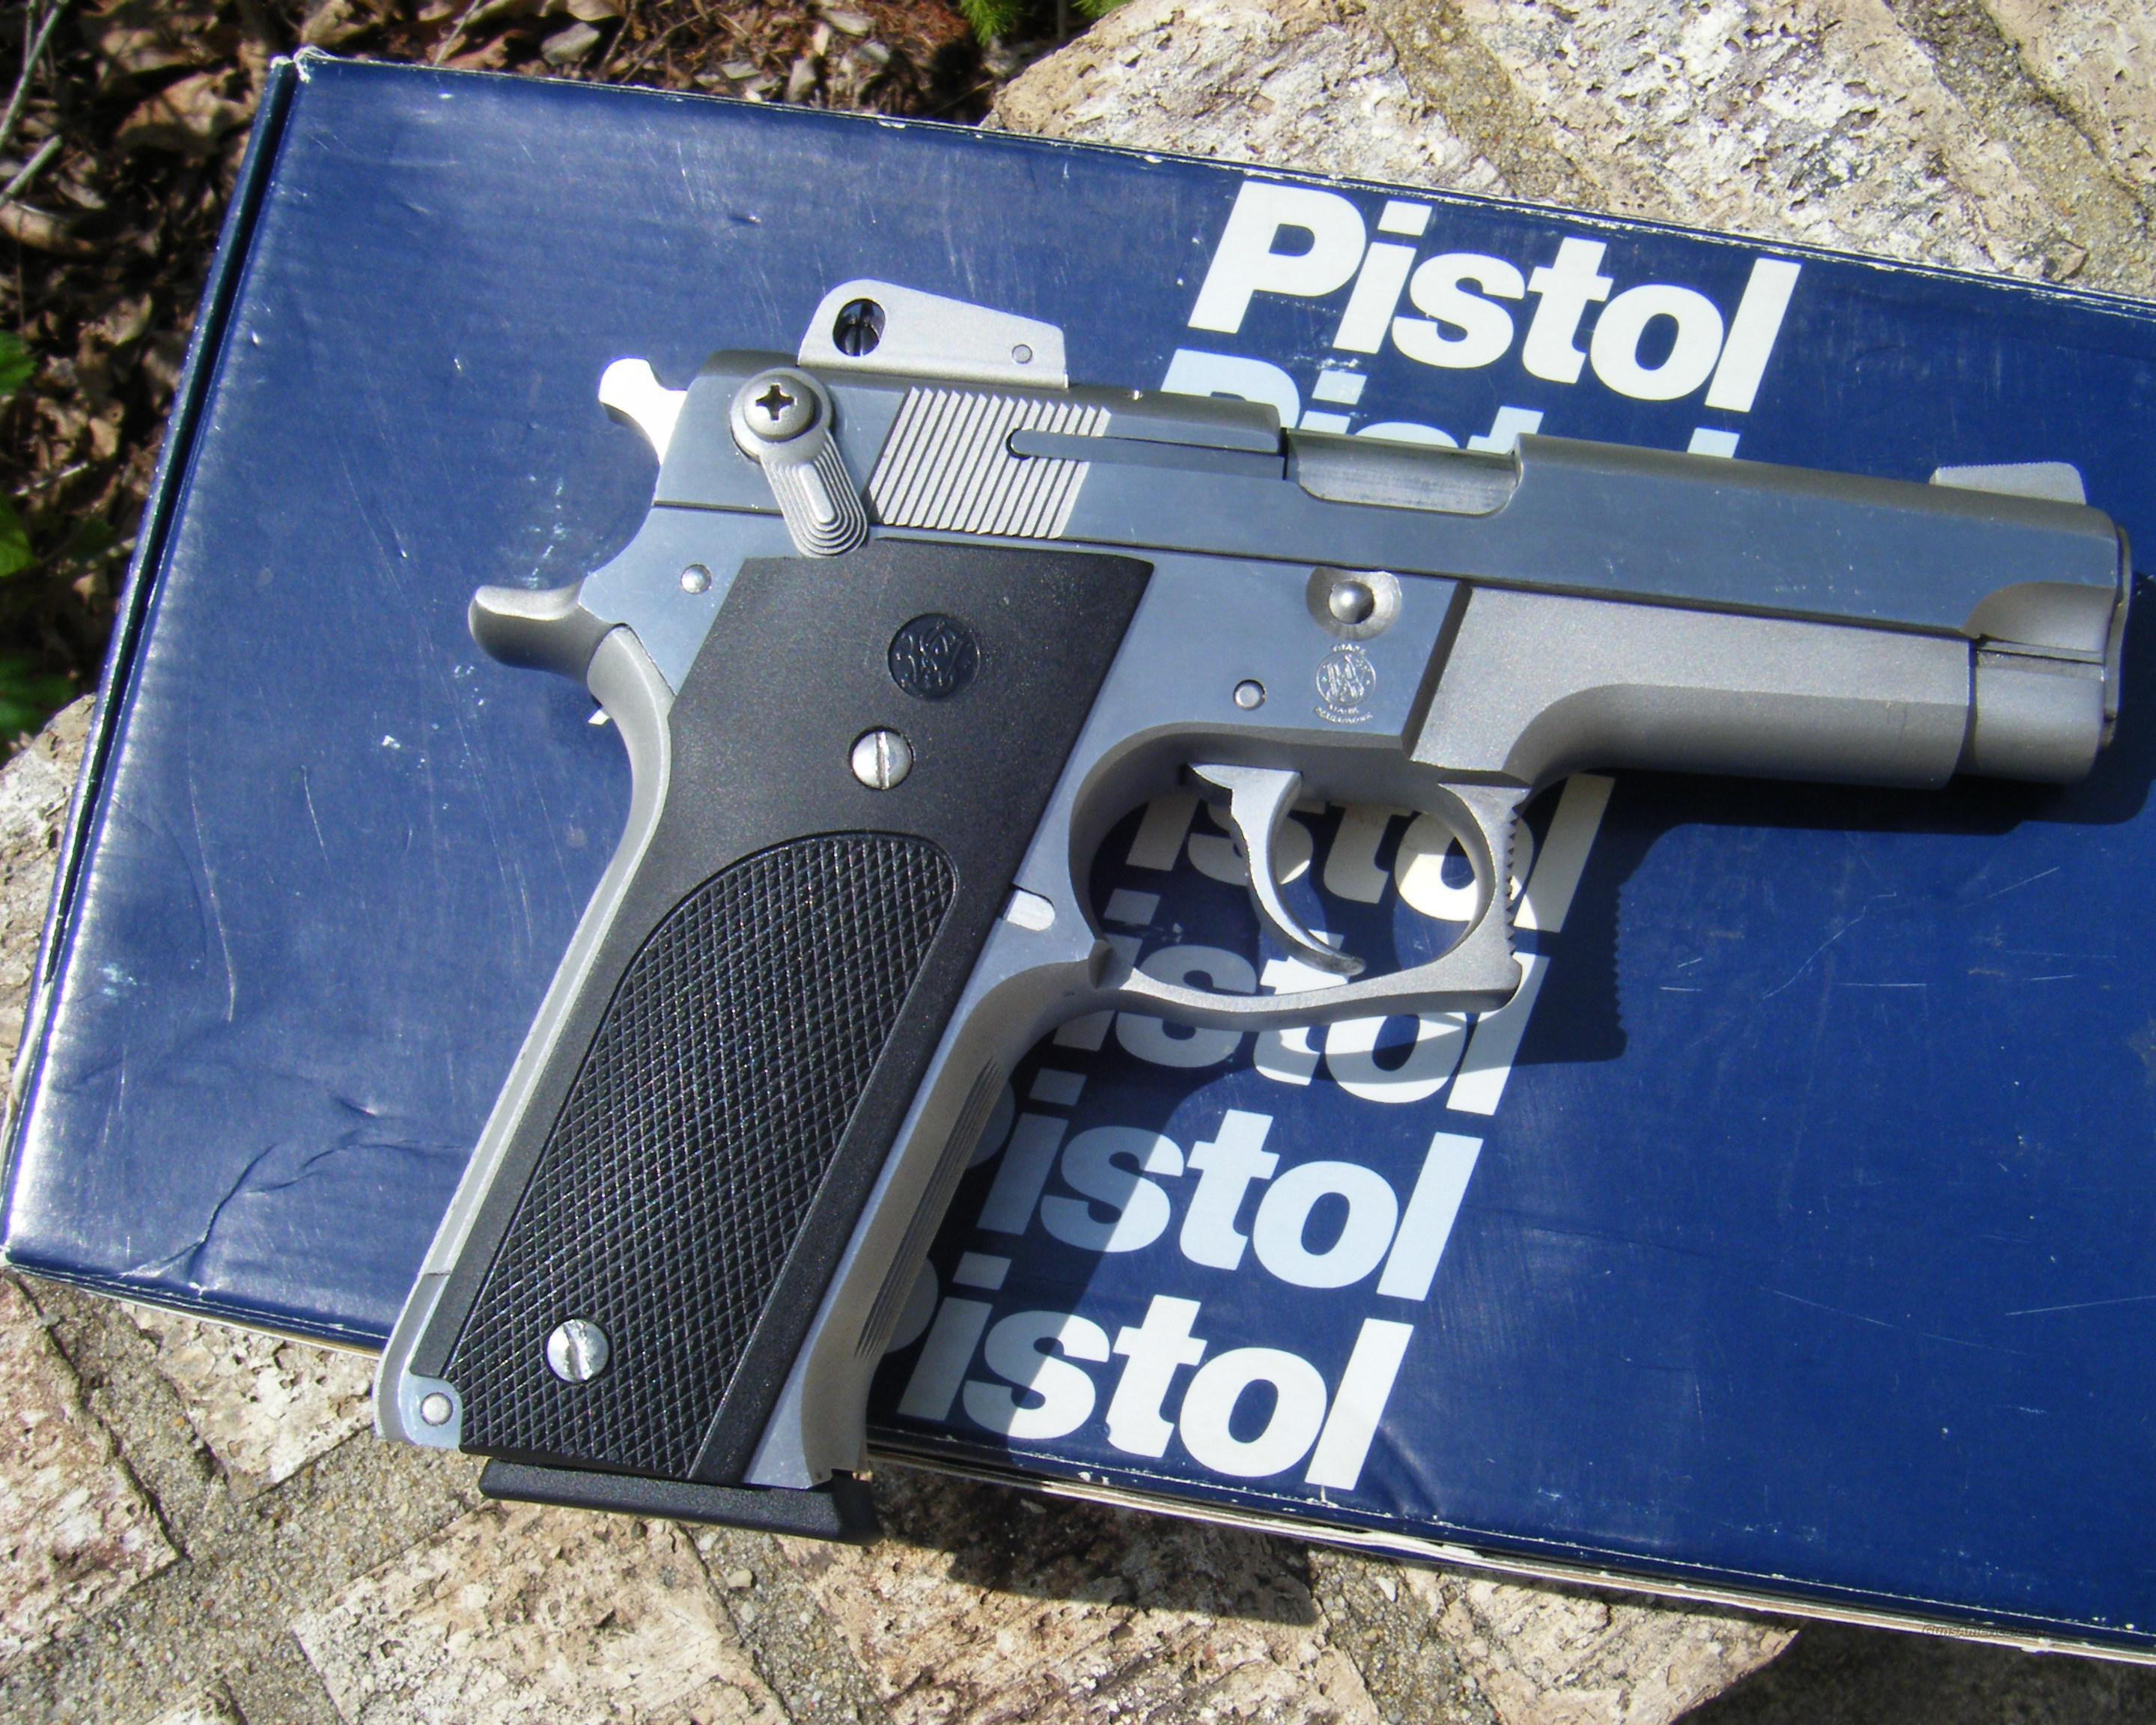 Smith & Wesson 659 9MM   Guns > Pistols > Smith & Wesson Pistols - Autos > Steel Frame